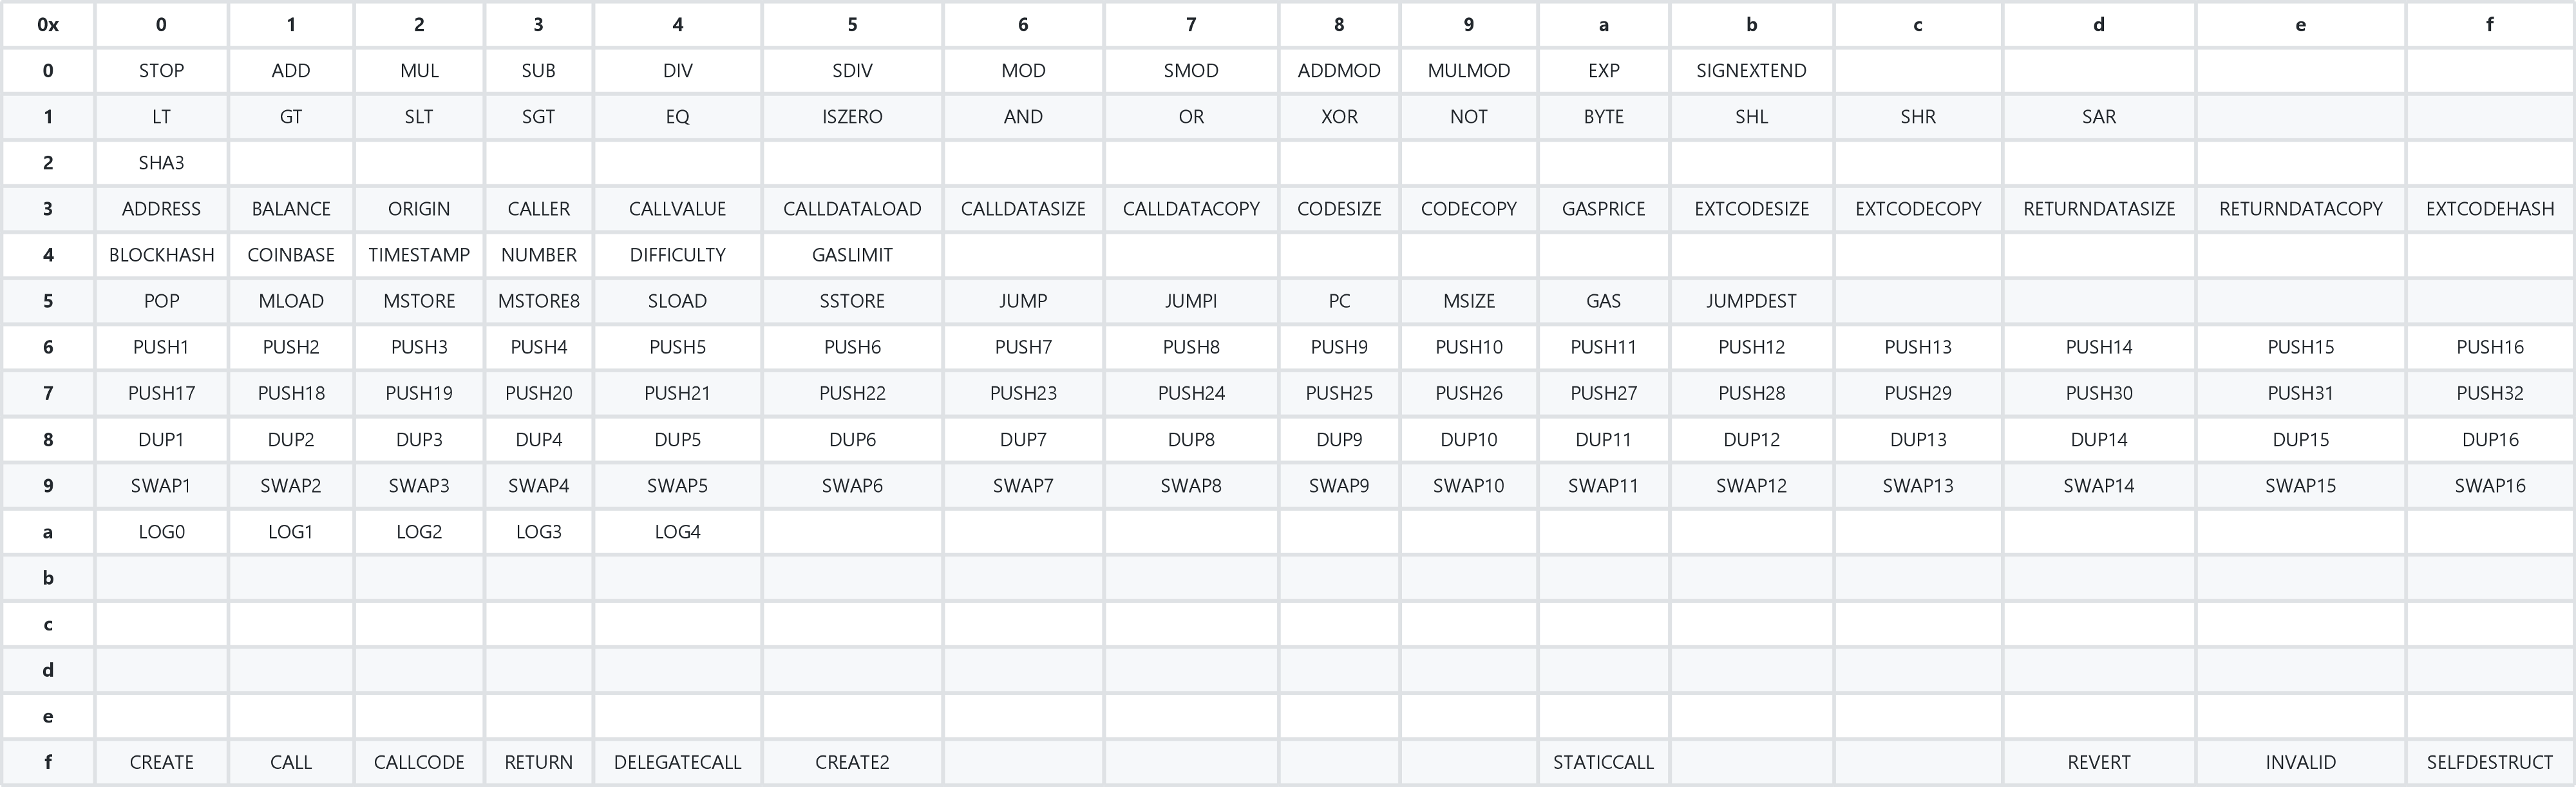 All OP_CODES of the EVM